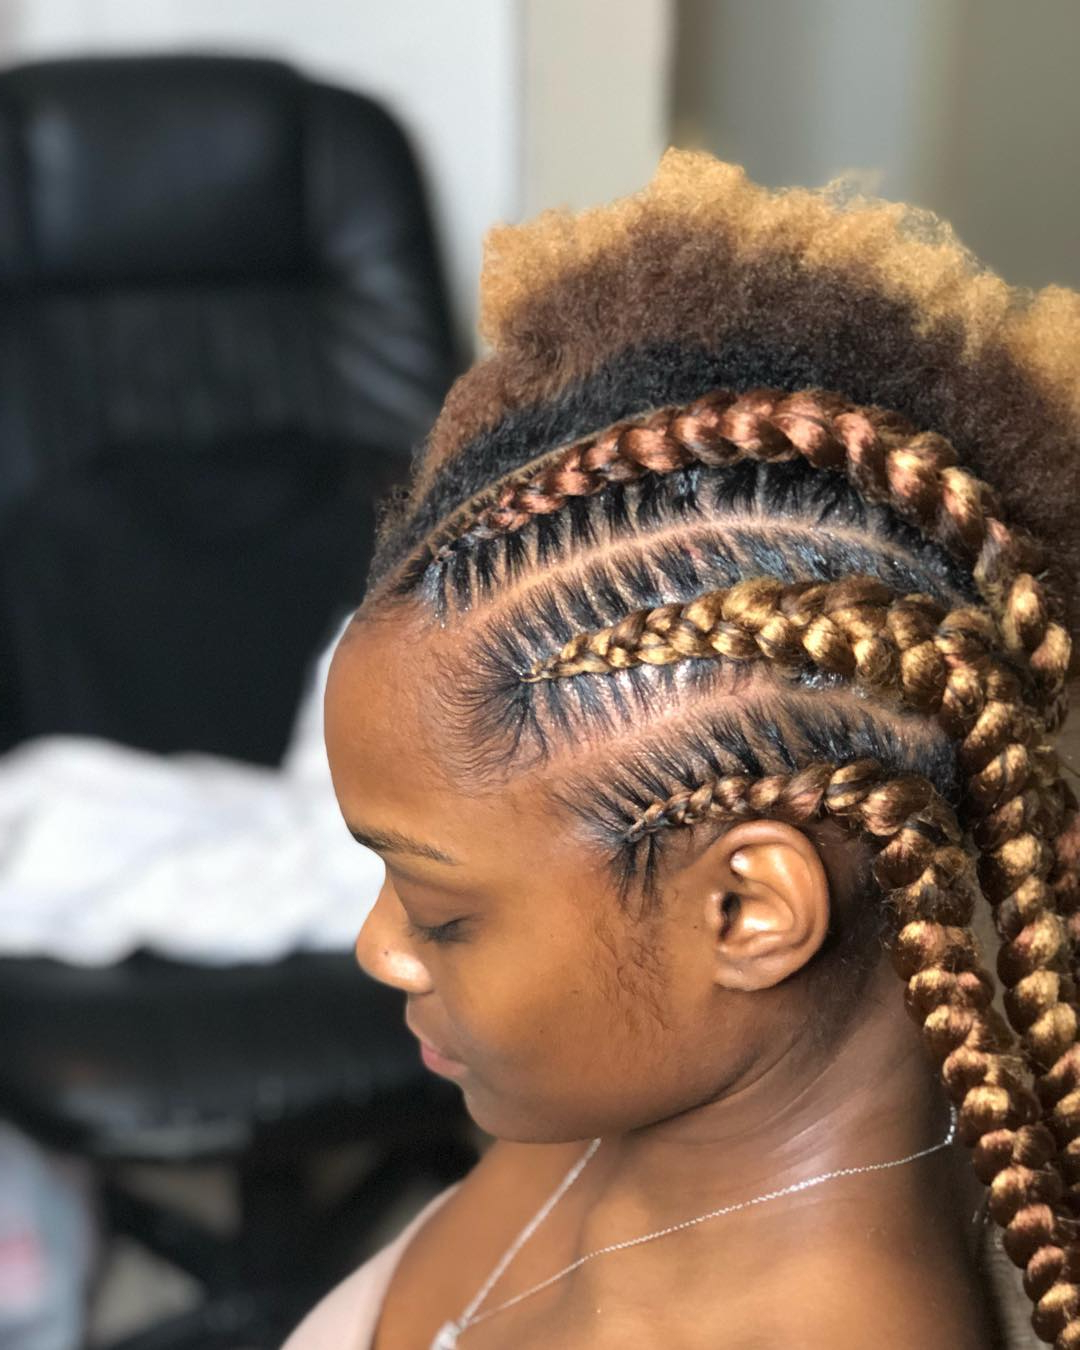 94 Artistic Ghana Braids To Try This Season – Prochronism With Regard To Favorite Medium Sized Braids Hairstyles (Gallery 13 of 20)